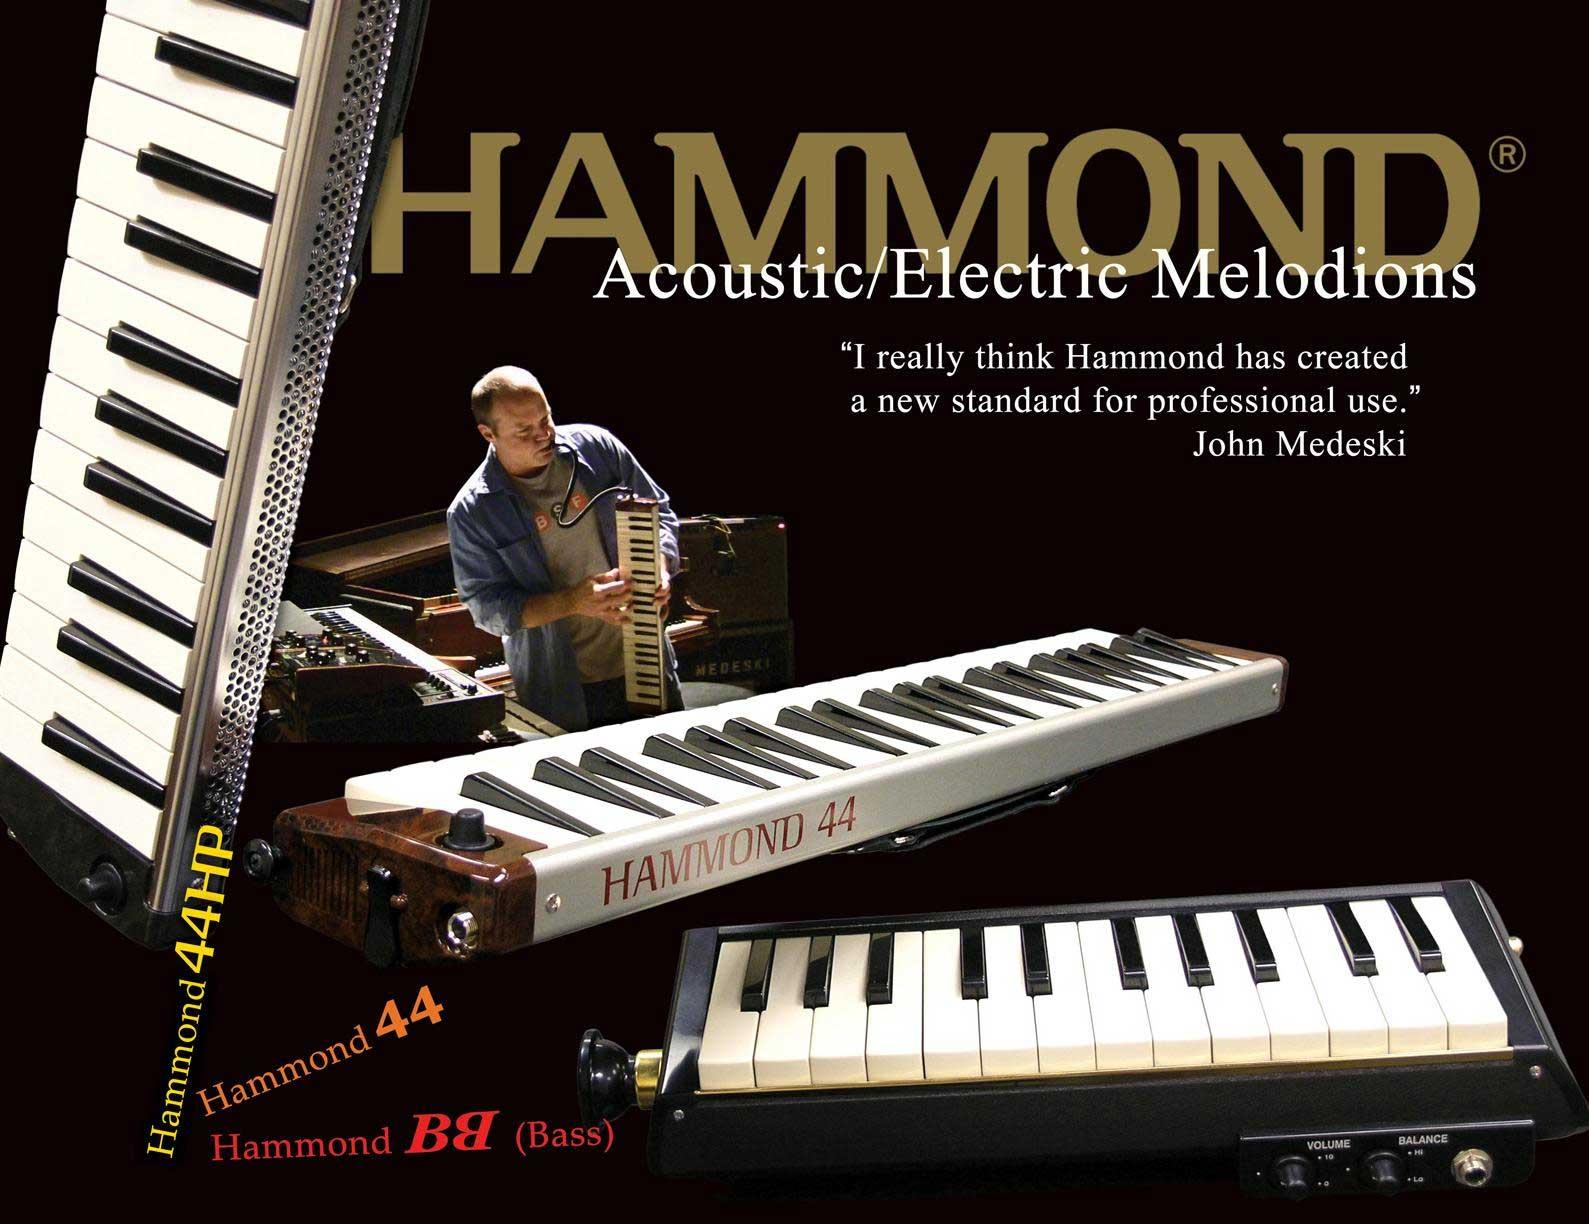 Hammond PRO-44HP High Power Alto Elektric / Acoustic Melodion program